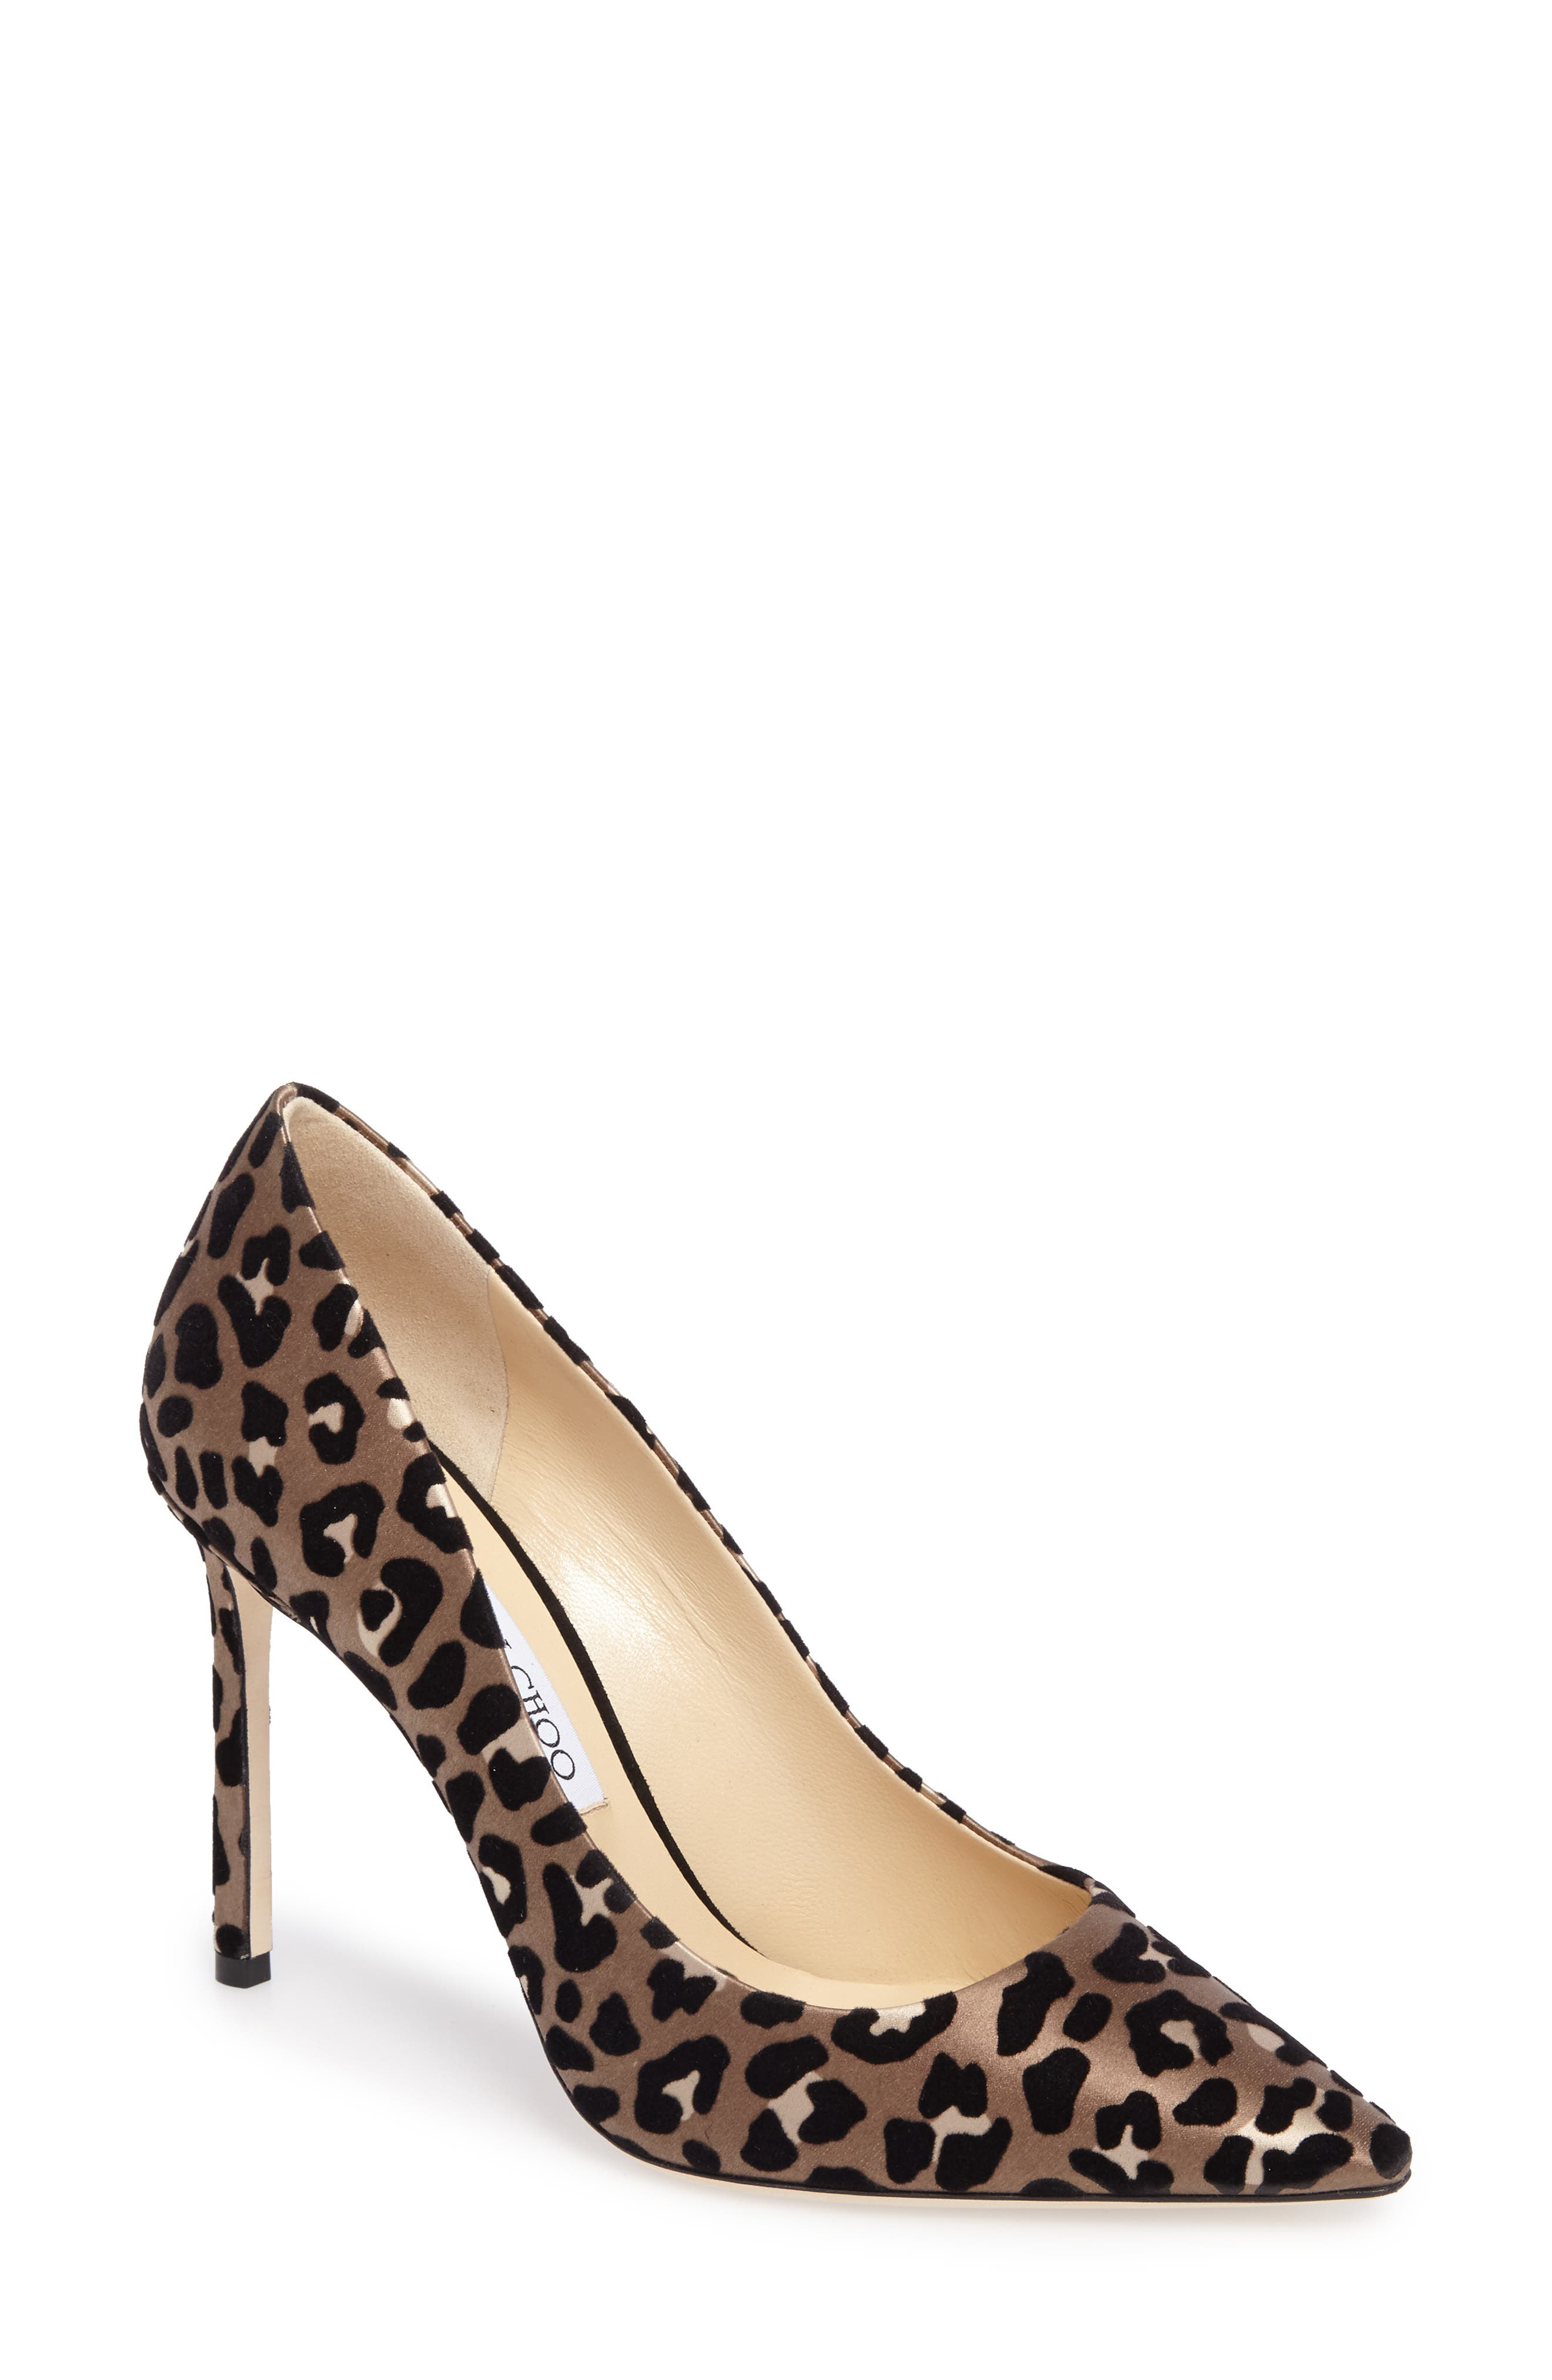 Alternate Image 1 Selected - Jimmy Choo Romy Pointy Toe Pump (Women)